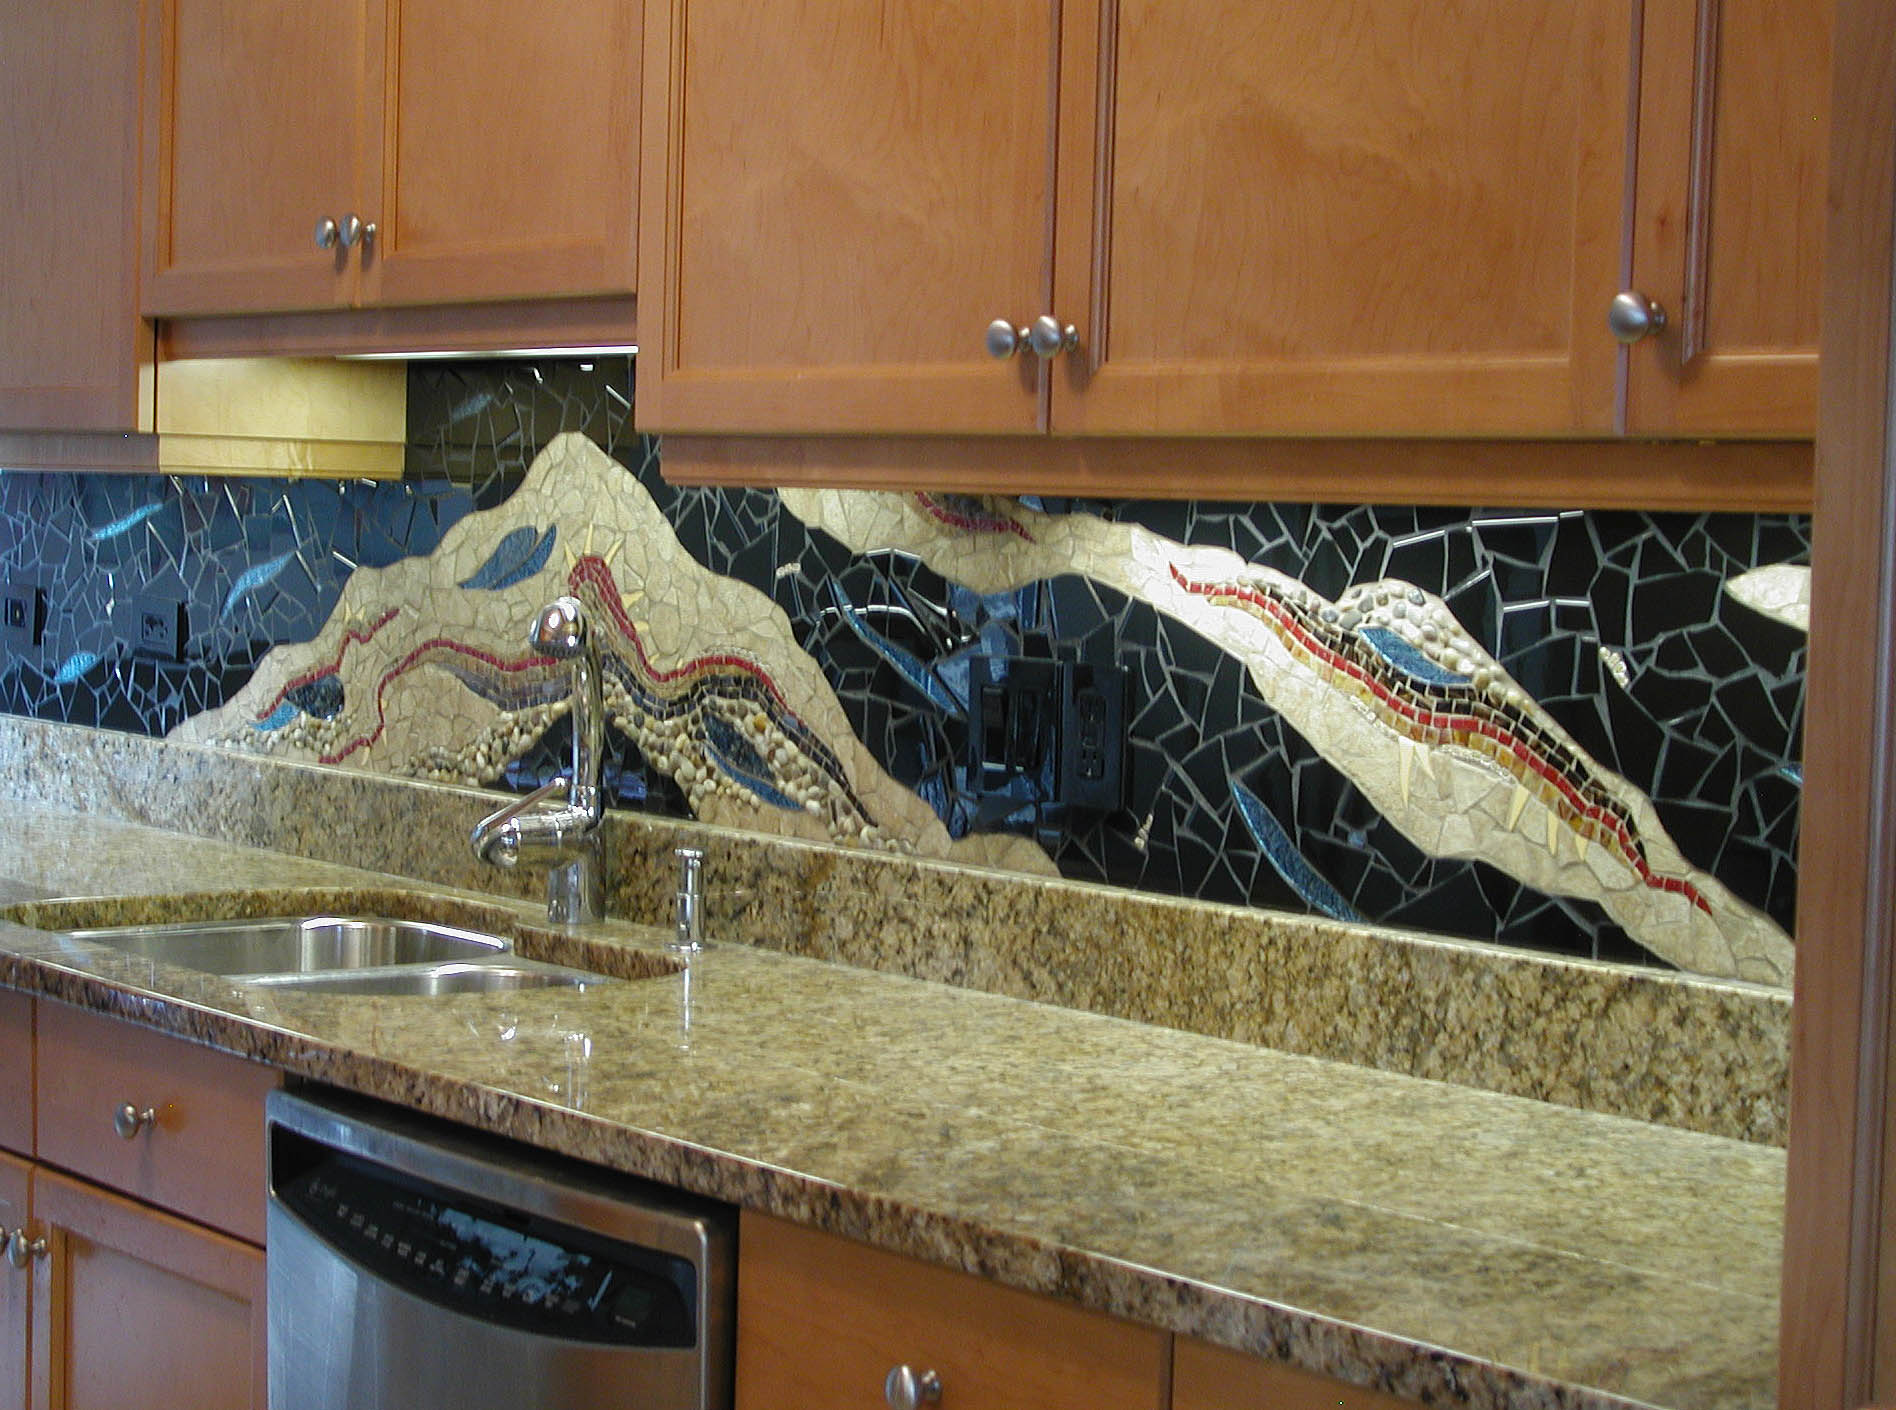 Admirable 15 Outstanding Kitchen Mosaic Backsplash Ideas That Are Download Free Architecture Designs Scobabritishbridgeorg